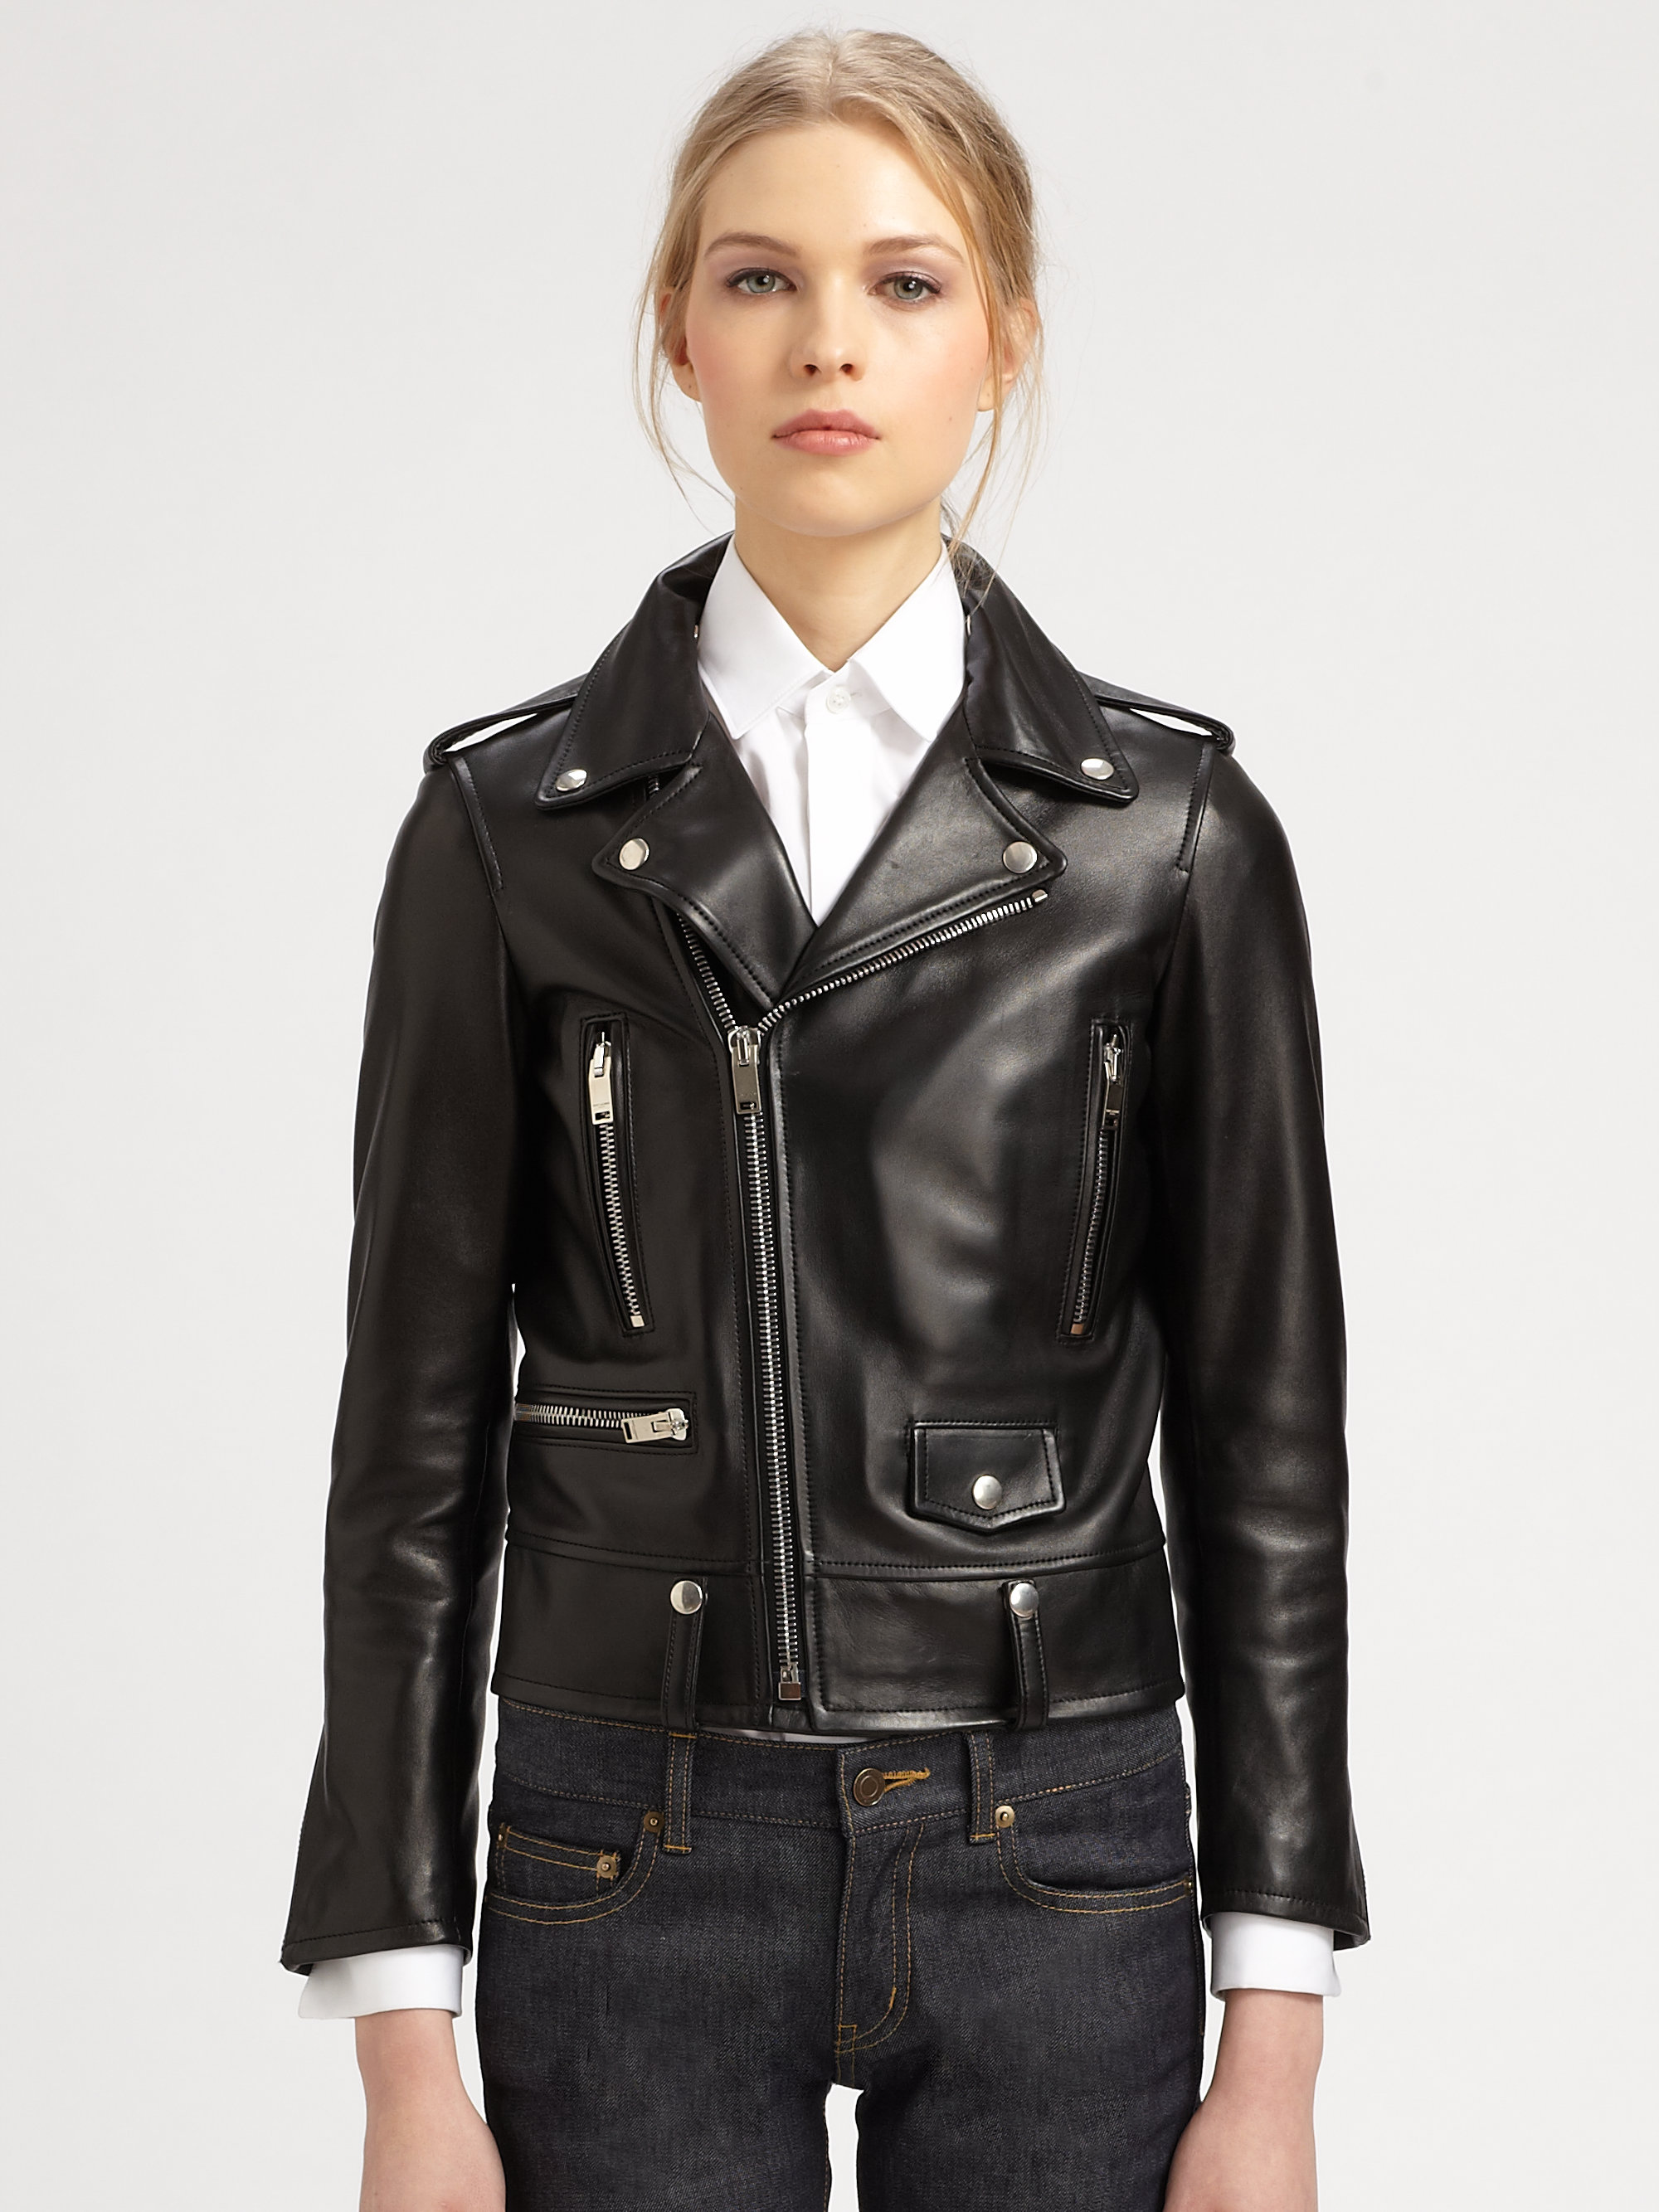 Leather motorcycle jackets for women fashion 69